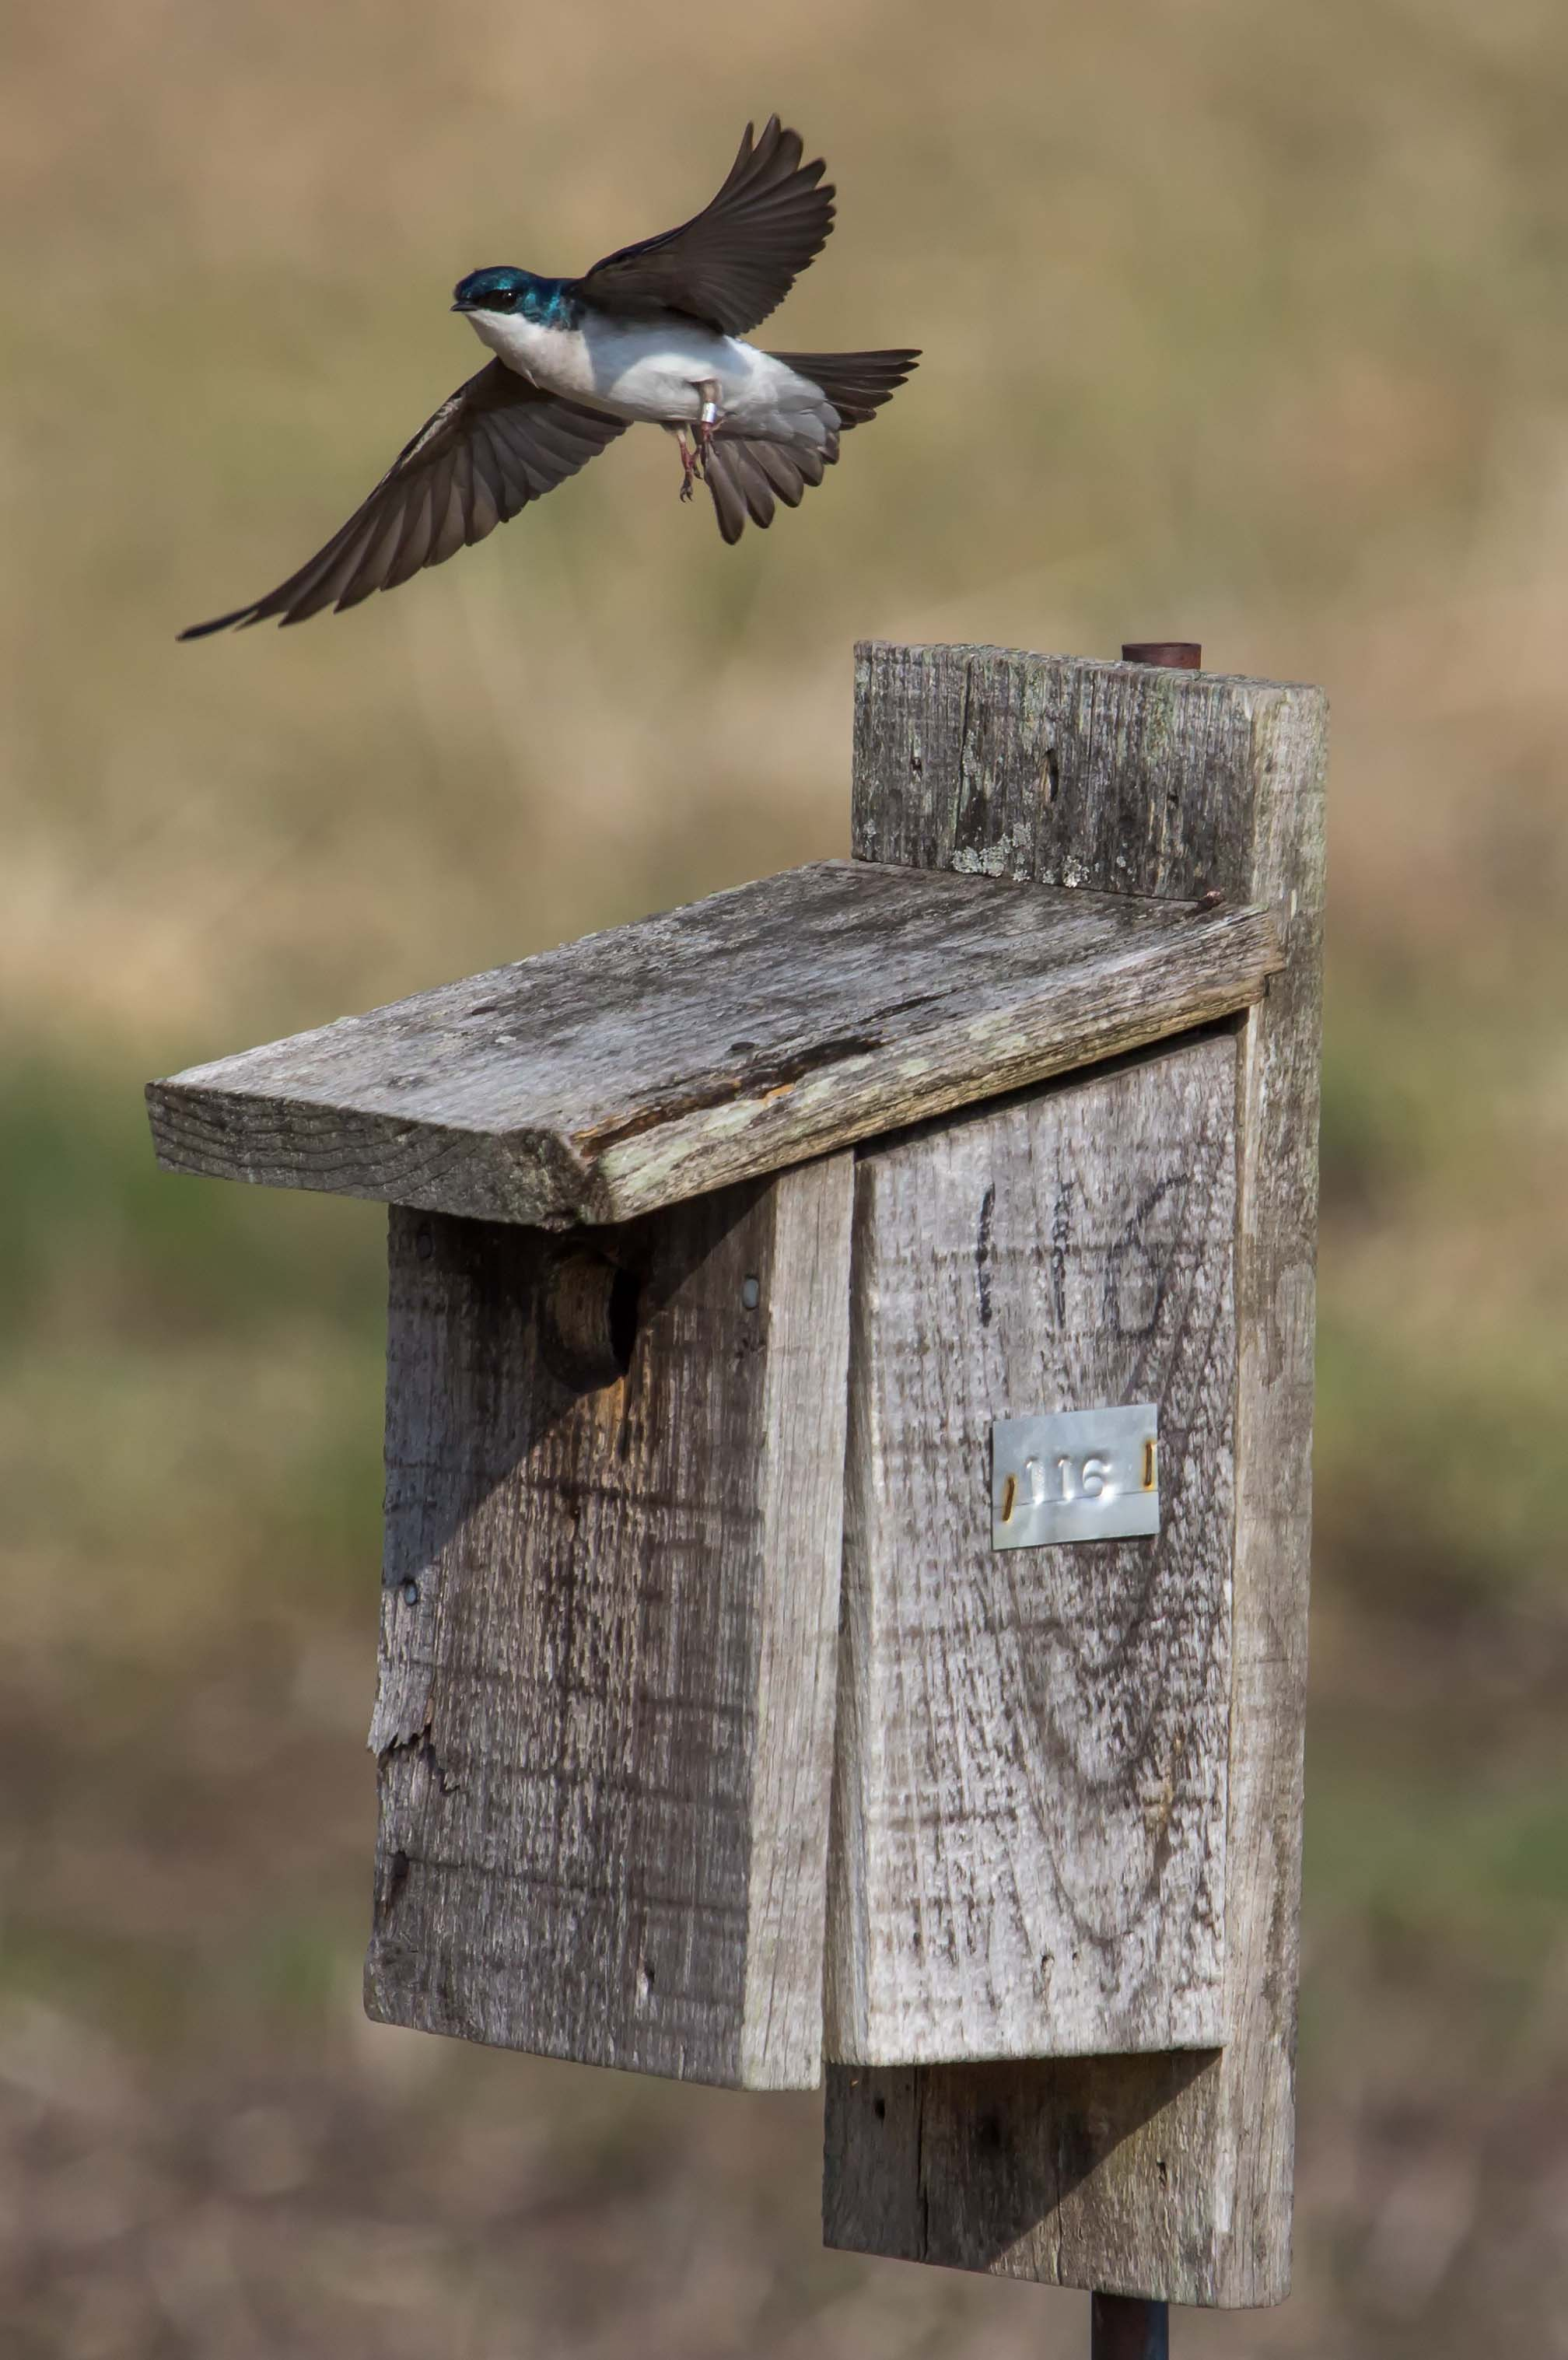 Tree Swallow.  Copyright, Esther Kowal-Bukata, 2014.  All rights reserved.